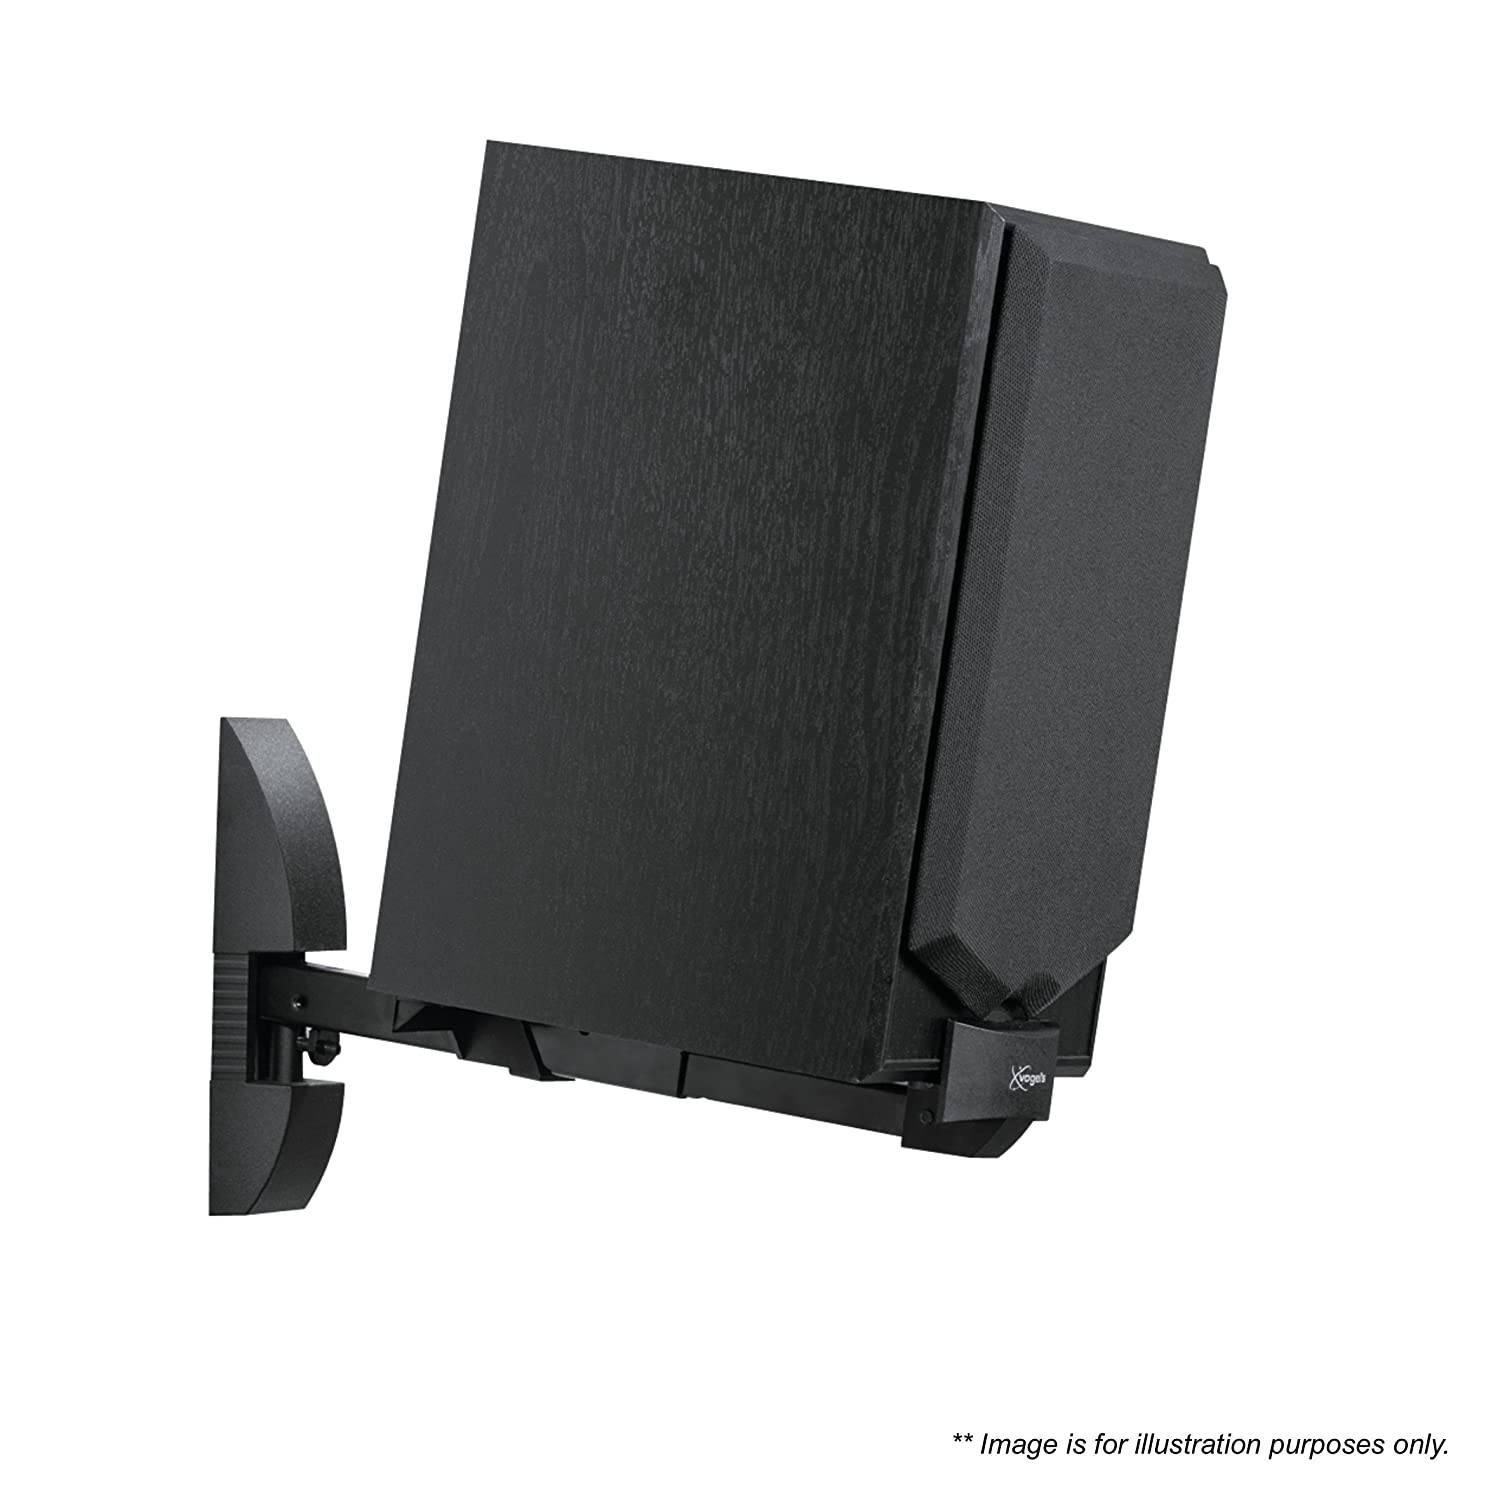 Amazon Buy Vogel s Speaker Wall Mount line at Low Prices in